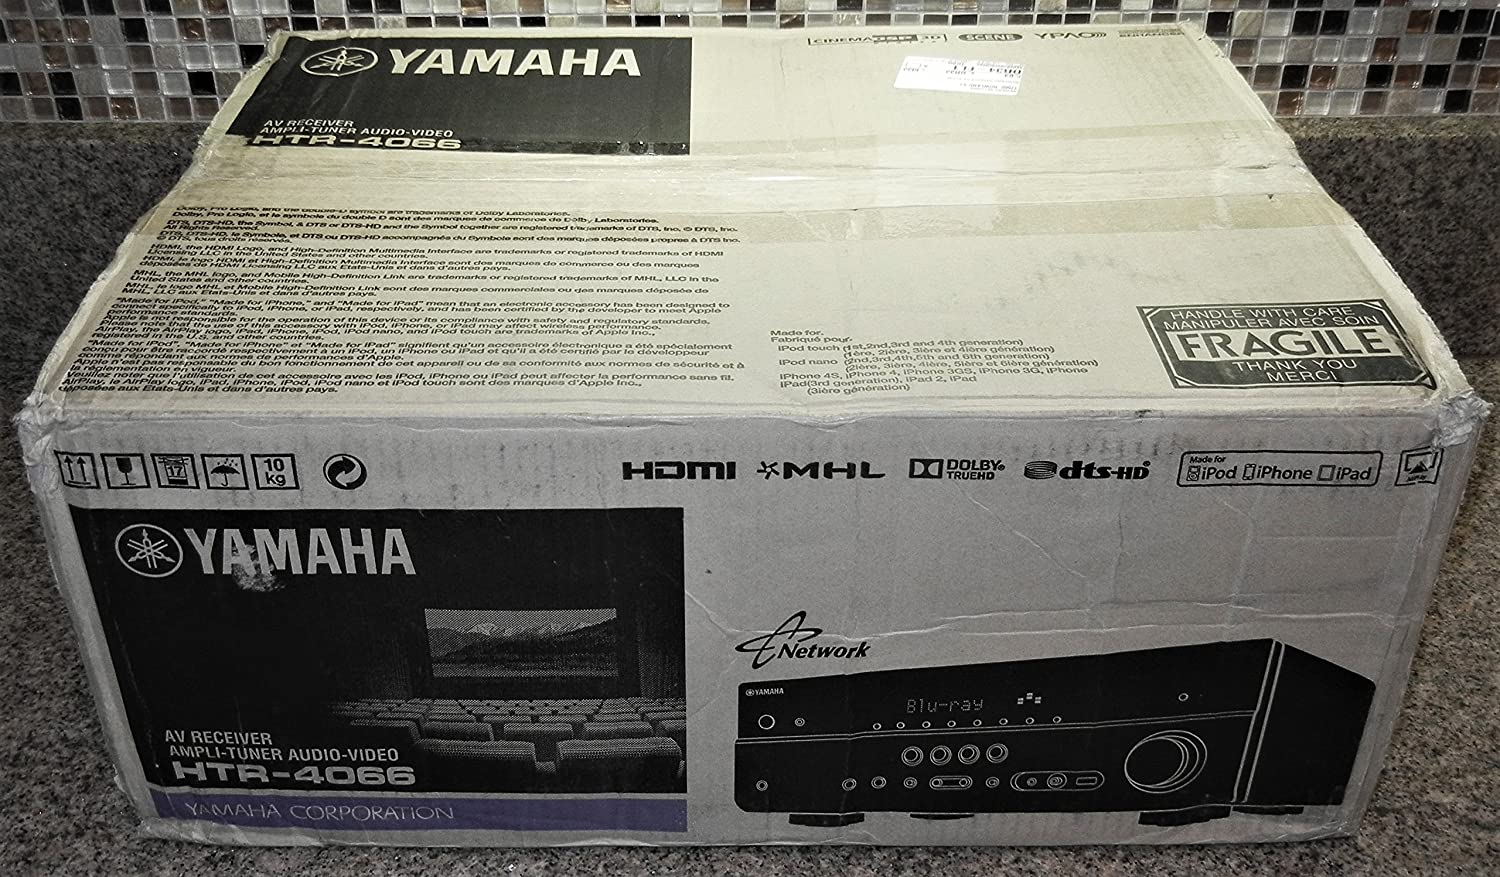 Amazon.com: Yamaha HTR-4066BL 5.1-Channel 575-Watt Audio/Video Receiver,  Black: Home Audio & Theater